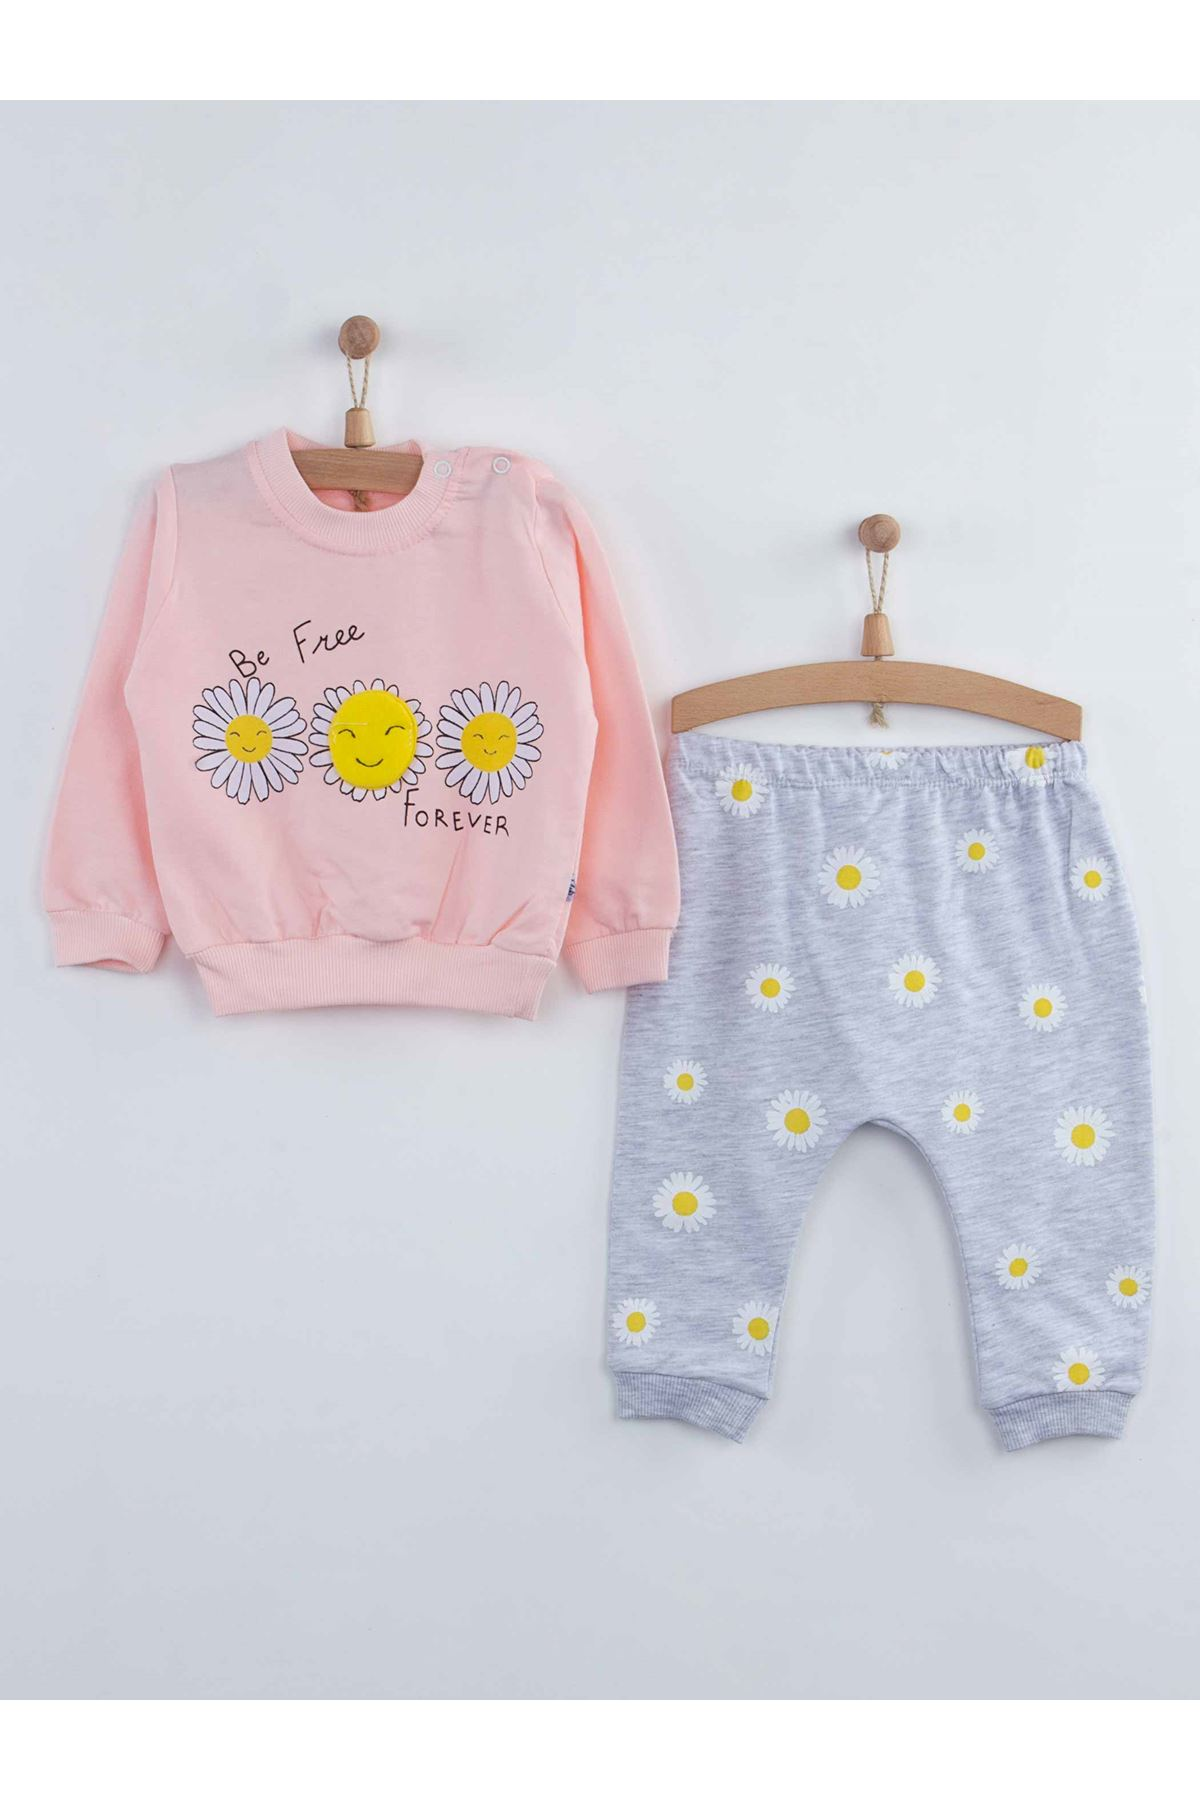 Powder Baby Girl 2 Piece Set sets Suits Cotton Seasonal Model Babies Daily Newborn Style Comfortable Clothing